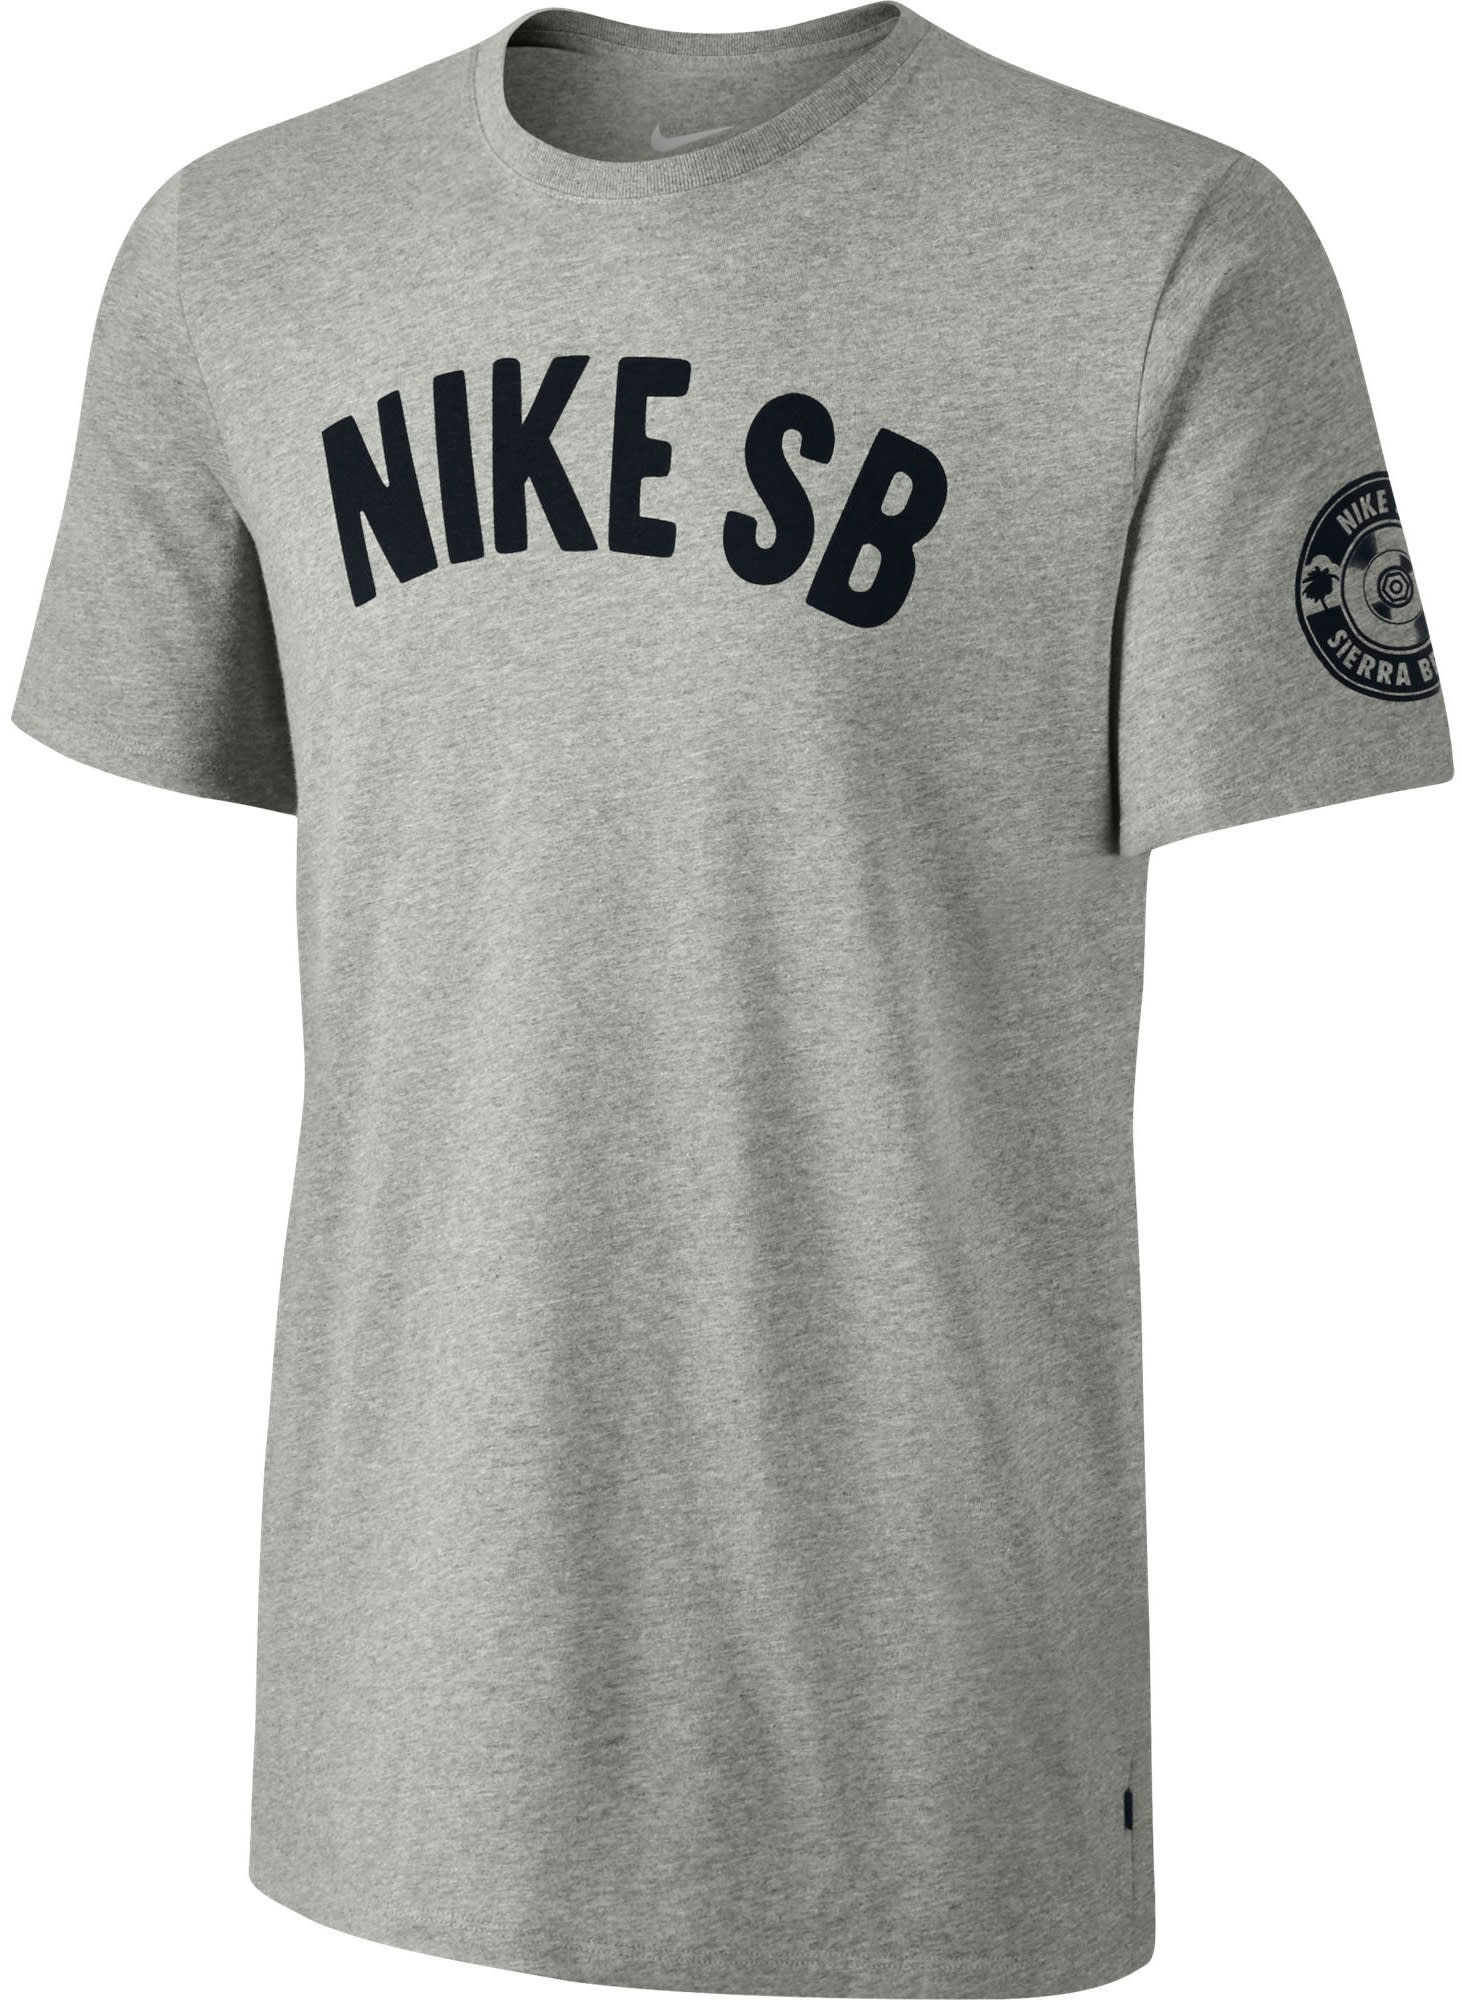 On Sale Nike SB Spring Training T-Shirt up to 45% off